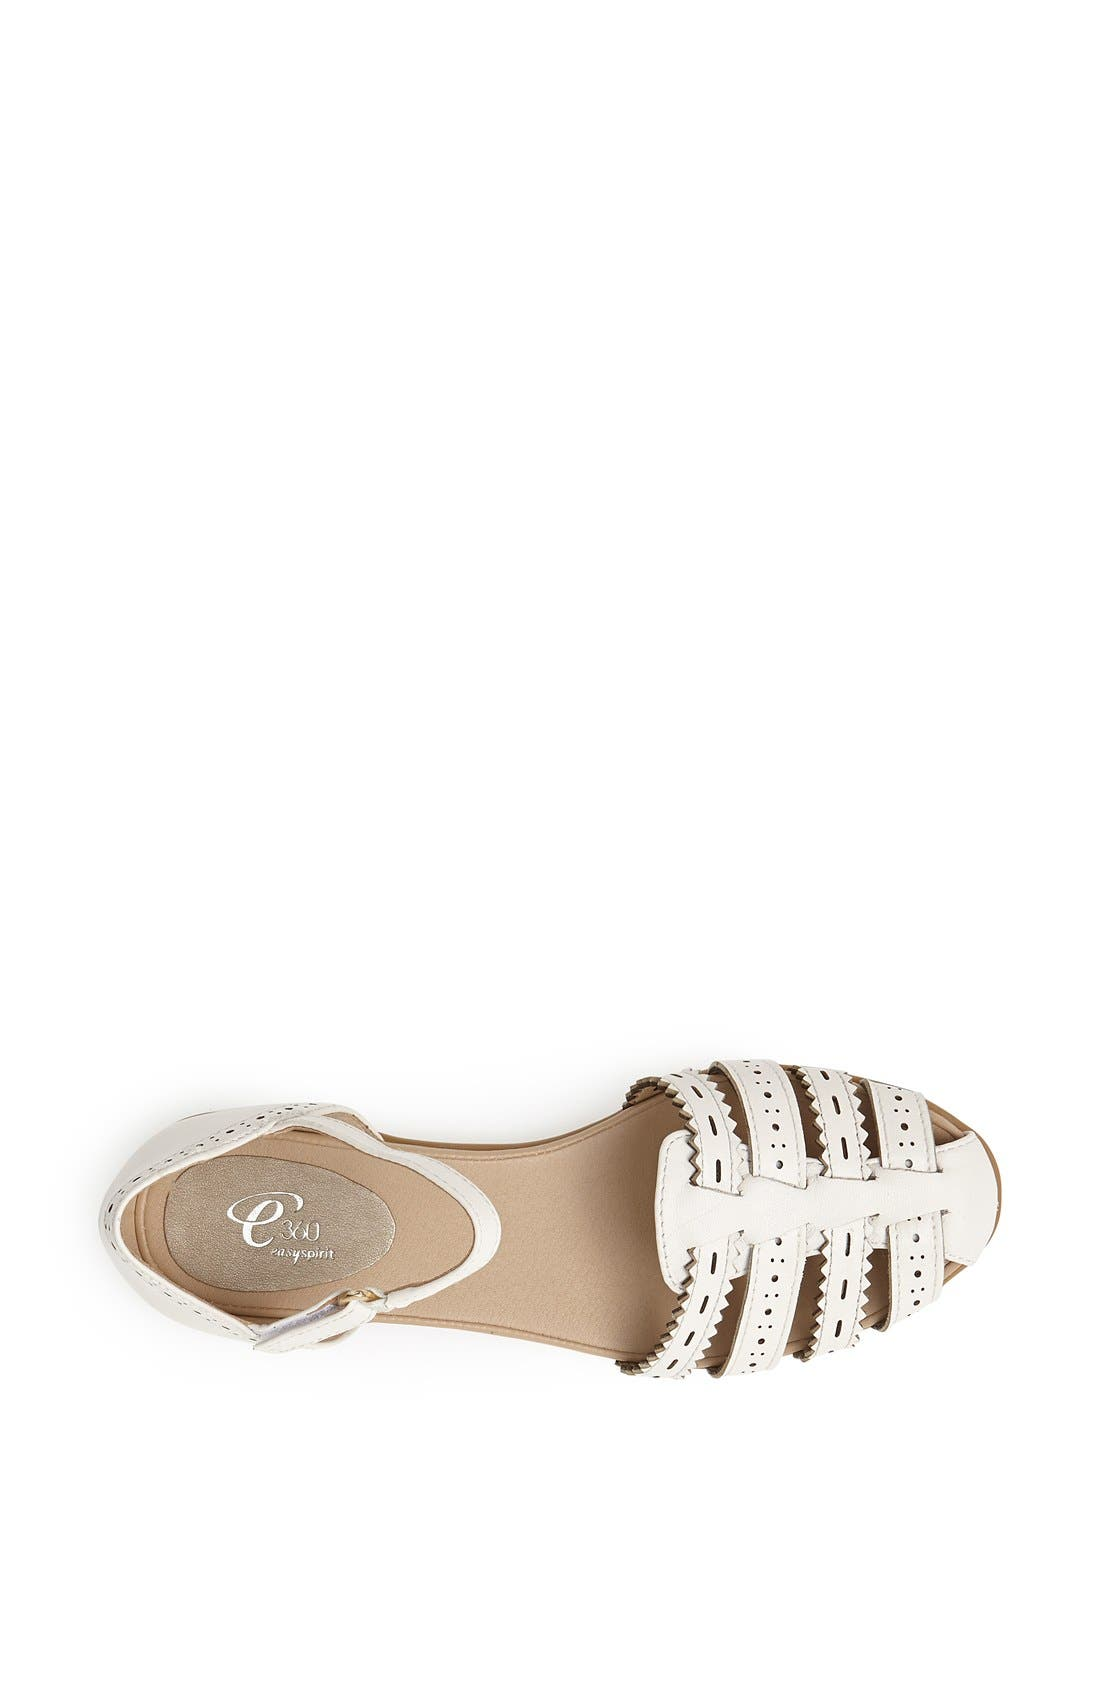 Alternate Image 3  - Easy Spirit 'e360 - Galfriday' Pinked & Perforated Leather Quarter Strap Sandal (Women)